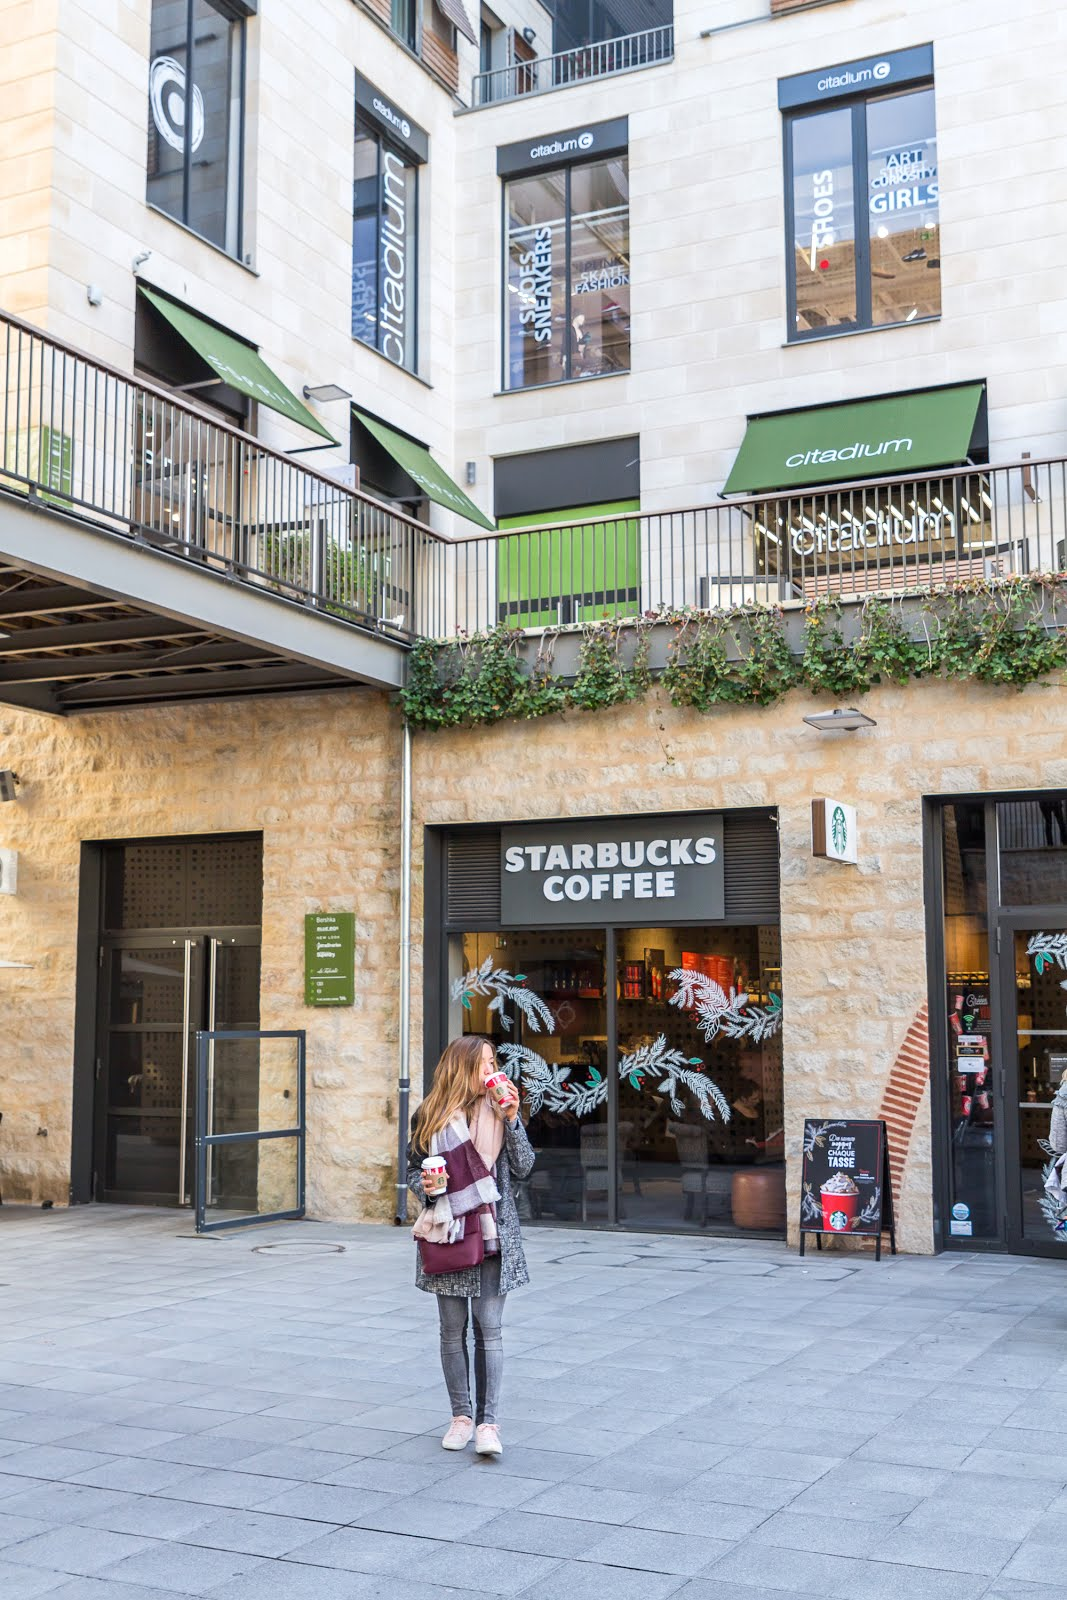 Starbucks Bordeaux